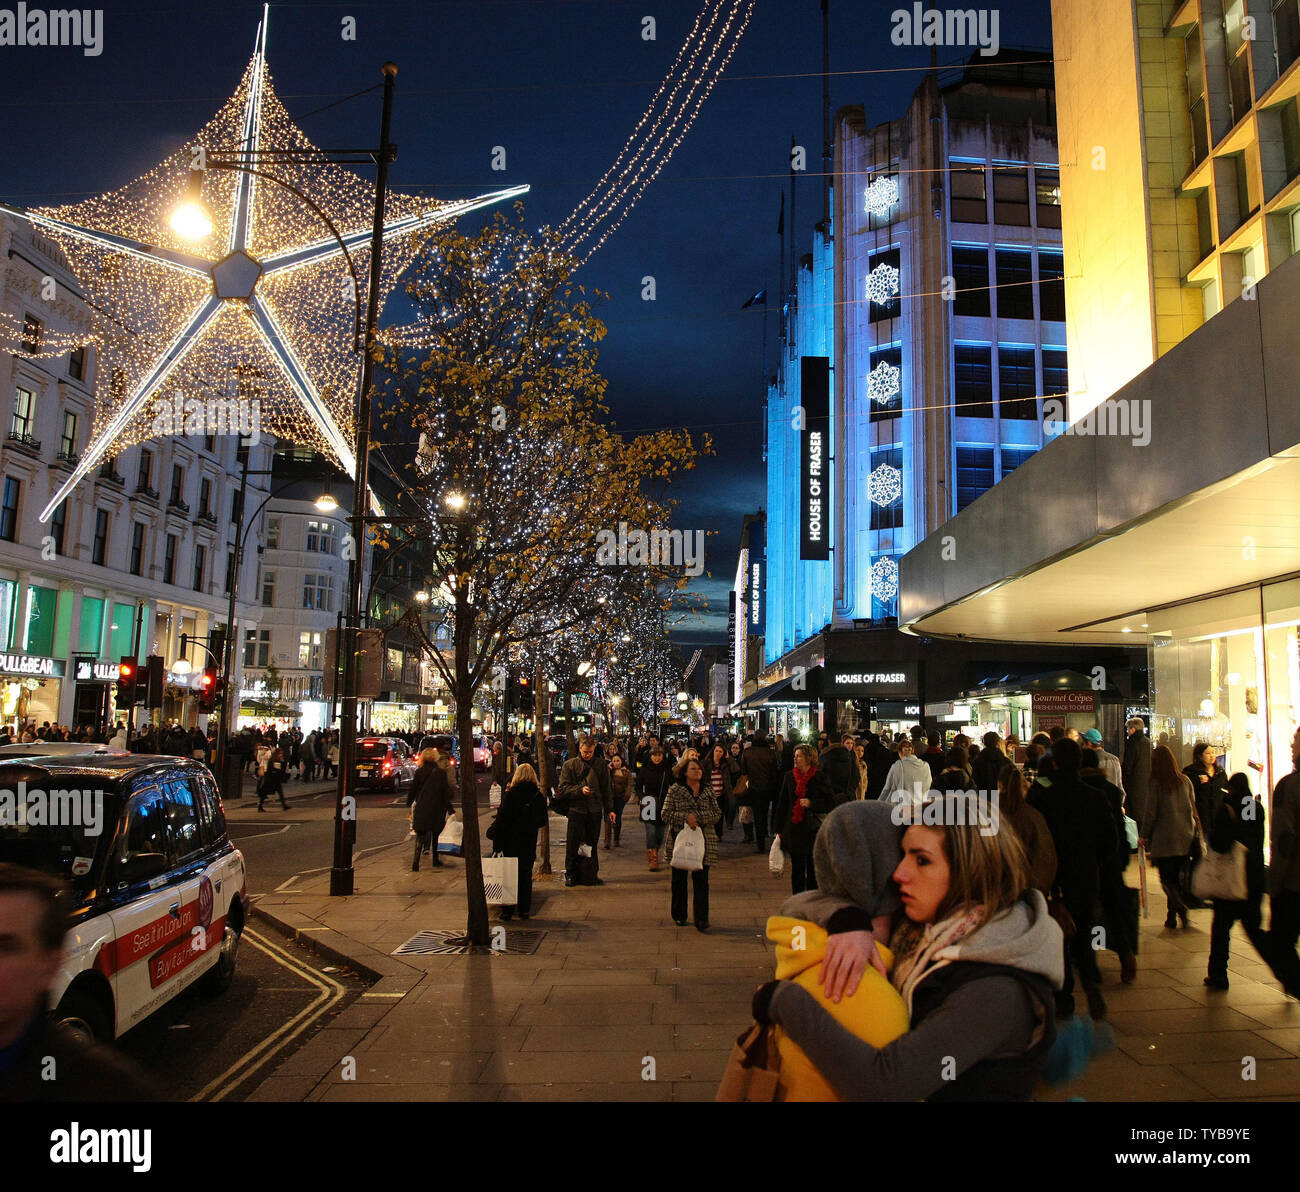 Christmas shoppers look for bargains on Oxford St,London's busiest shopping district on Tuesday December 20 2011.Retailers face another tough trading cycle as shoppers hold off making their purchases until the sales begin.    UPI/Hugo Philpott - Stock Image